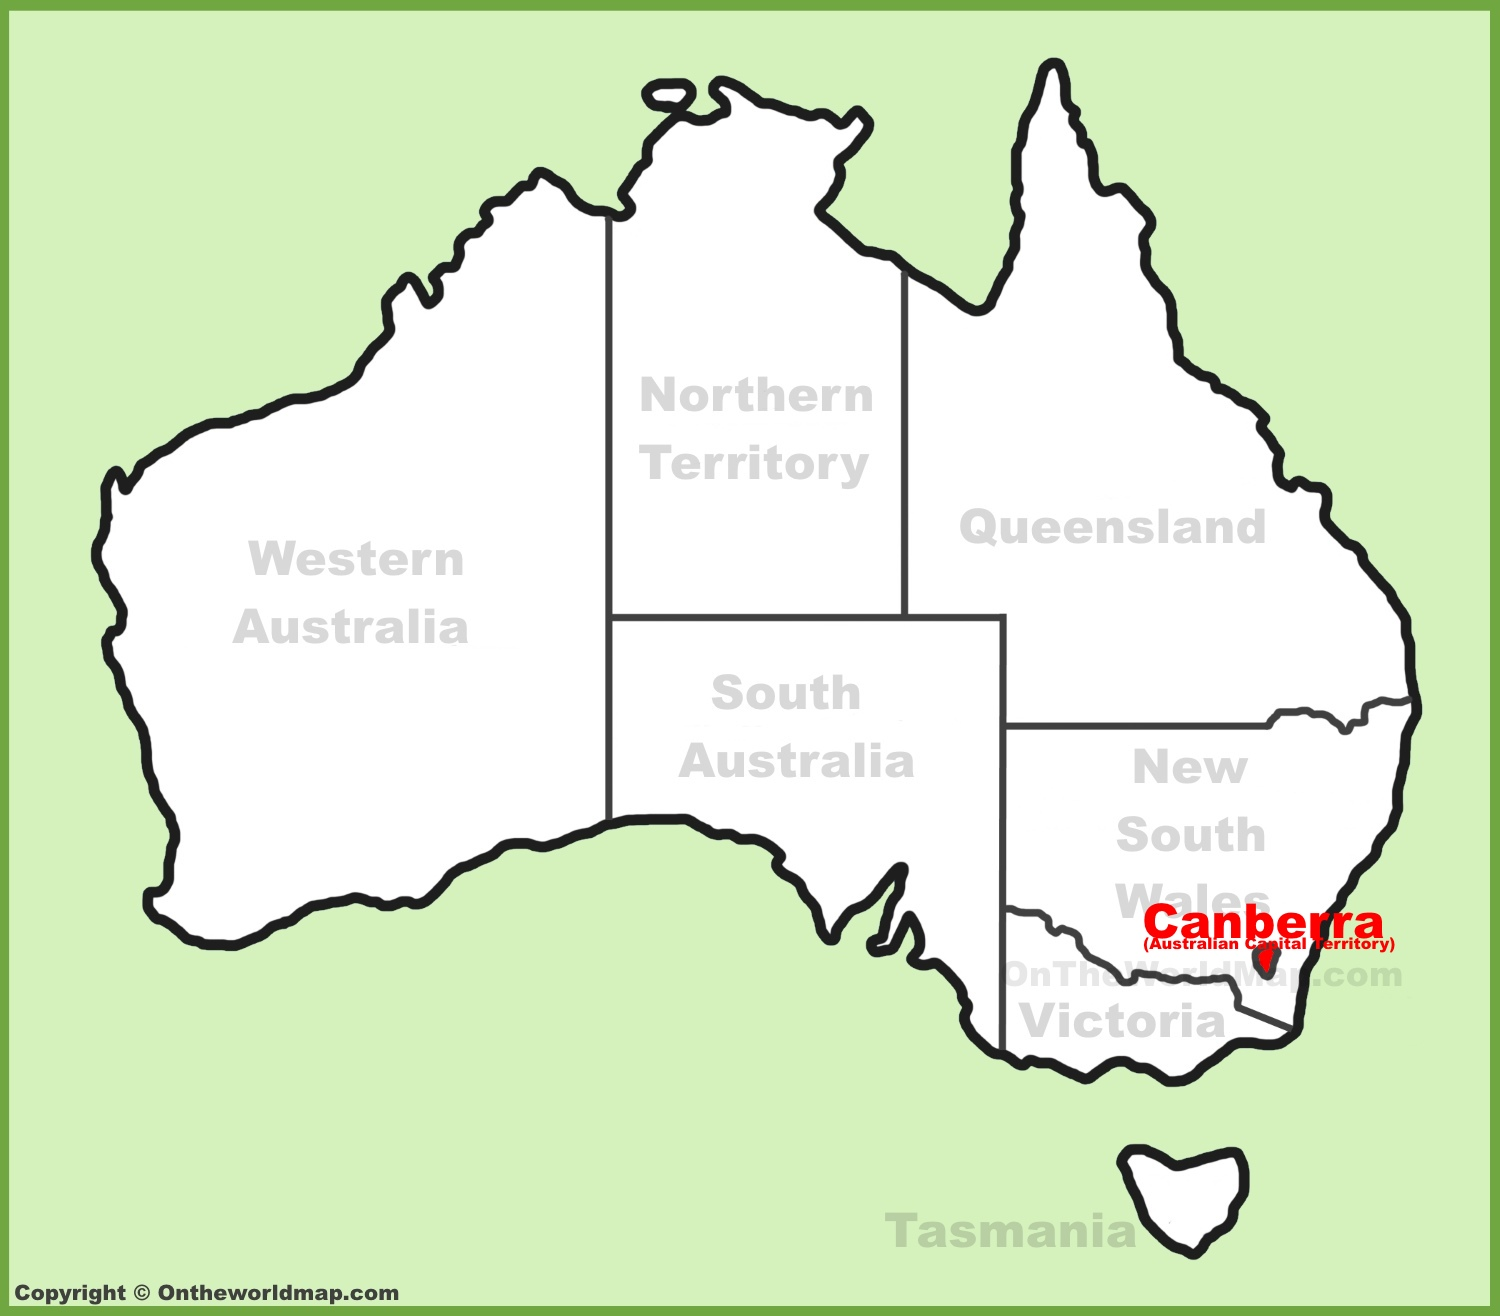 CANBERRA MAP PDF DOWNLOAD